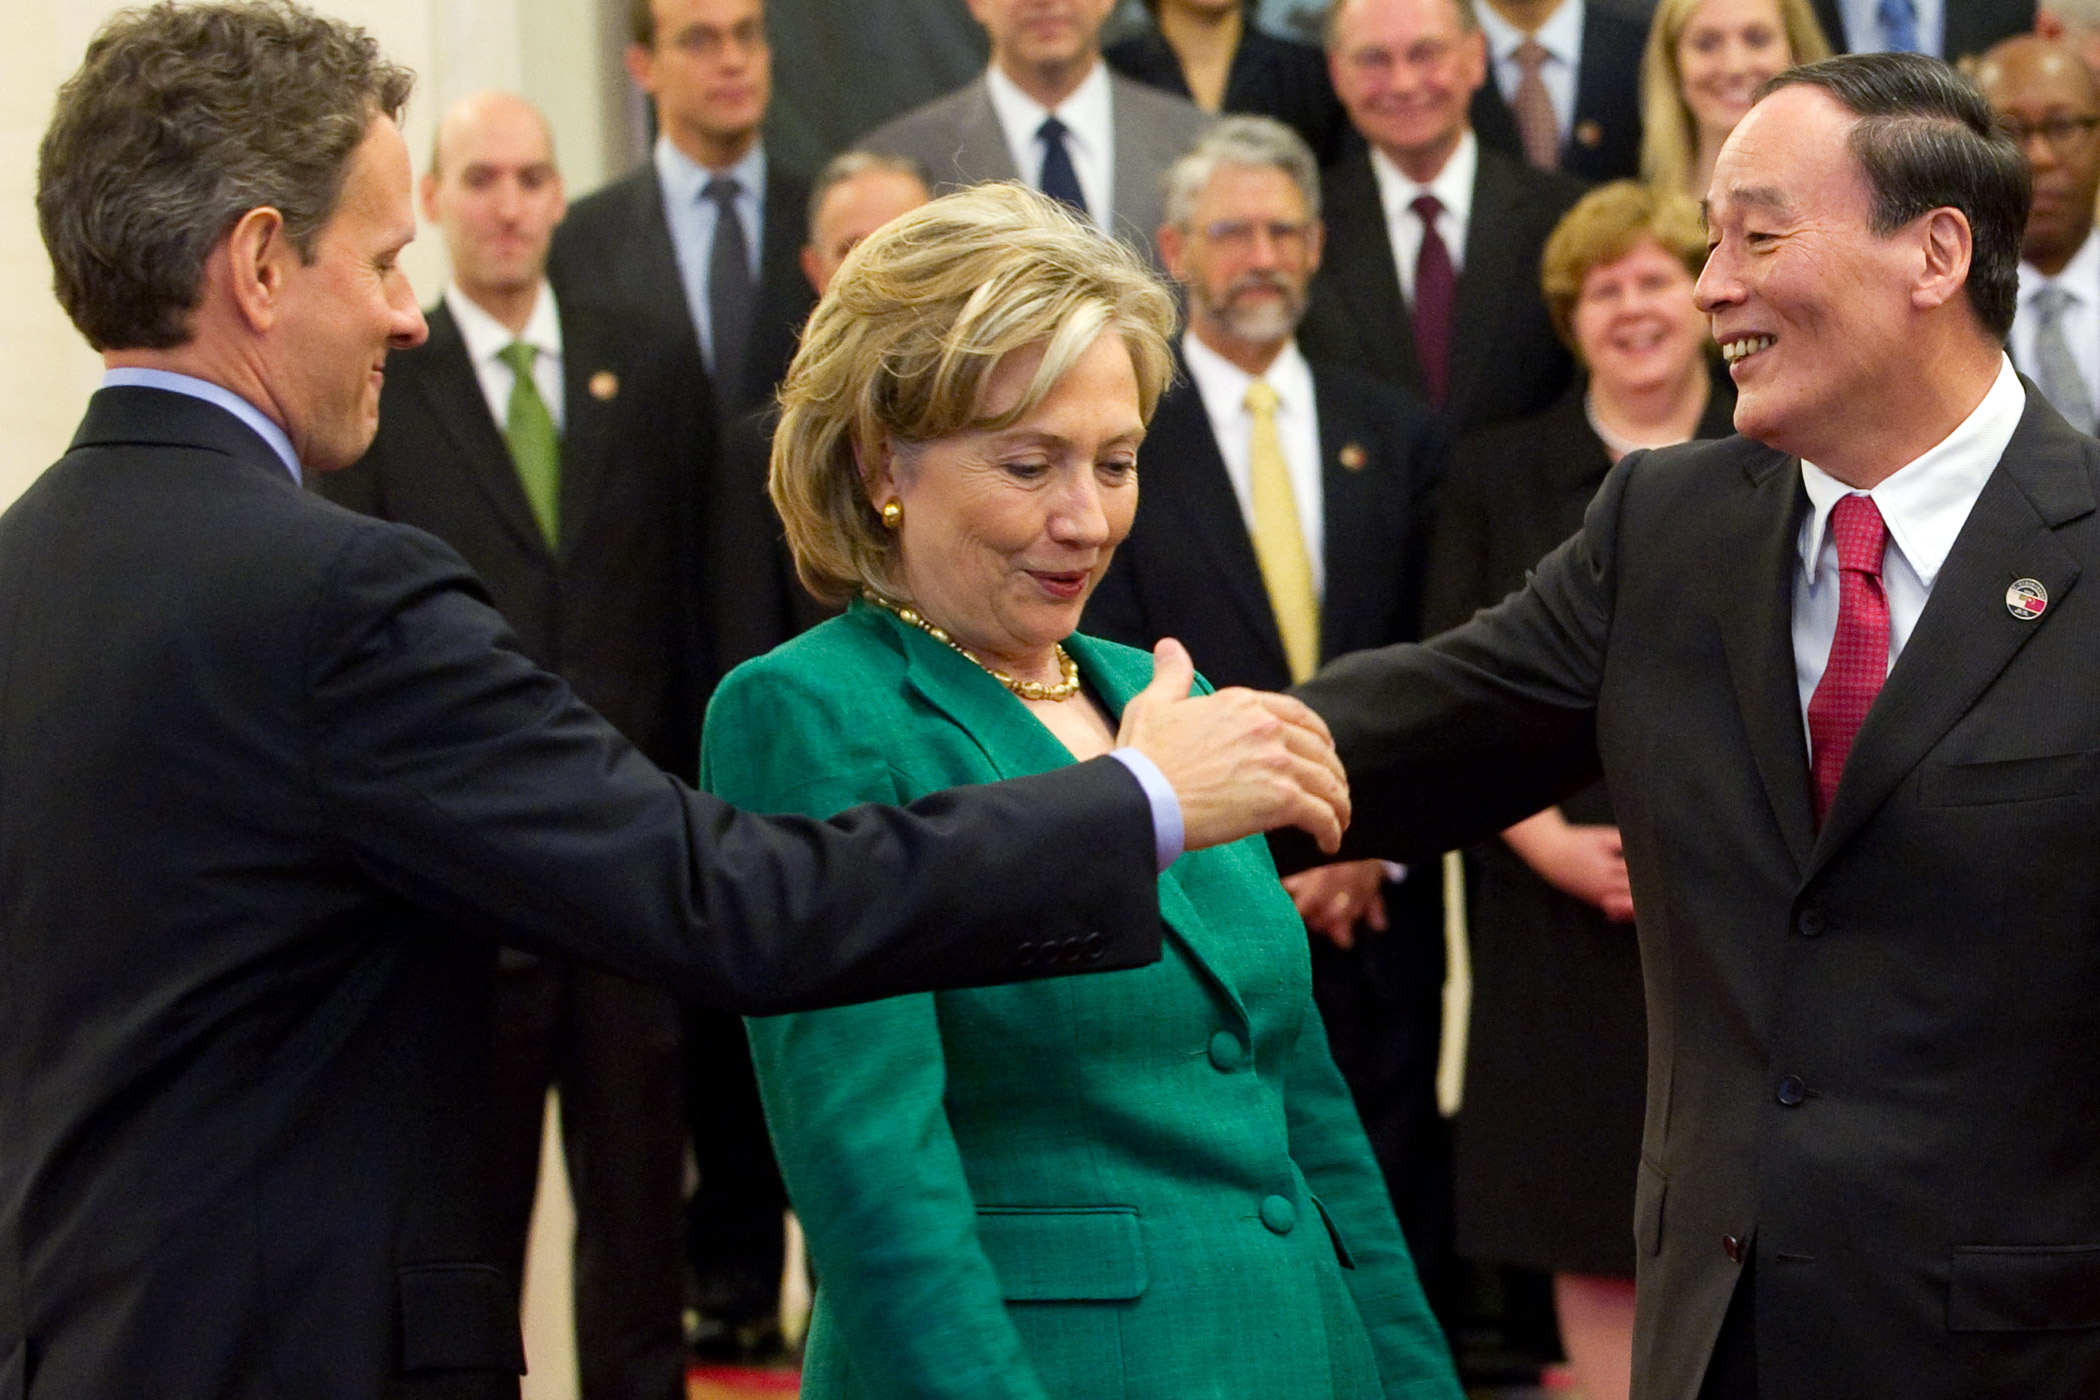 Chinese Vice-Premier Wang Qishan, right, tries to shake hands with U.S. Secretary of Treasury Timothy Geithner as then-Secretary of State Hillary Clinton passes through during the US-China Strategic & Economic Dialogue in Beijing on May 24, 2010.